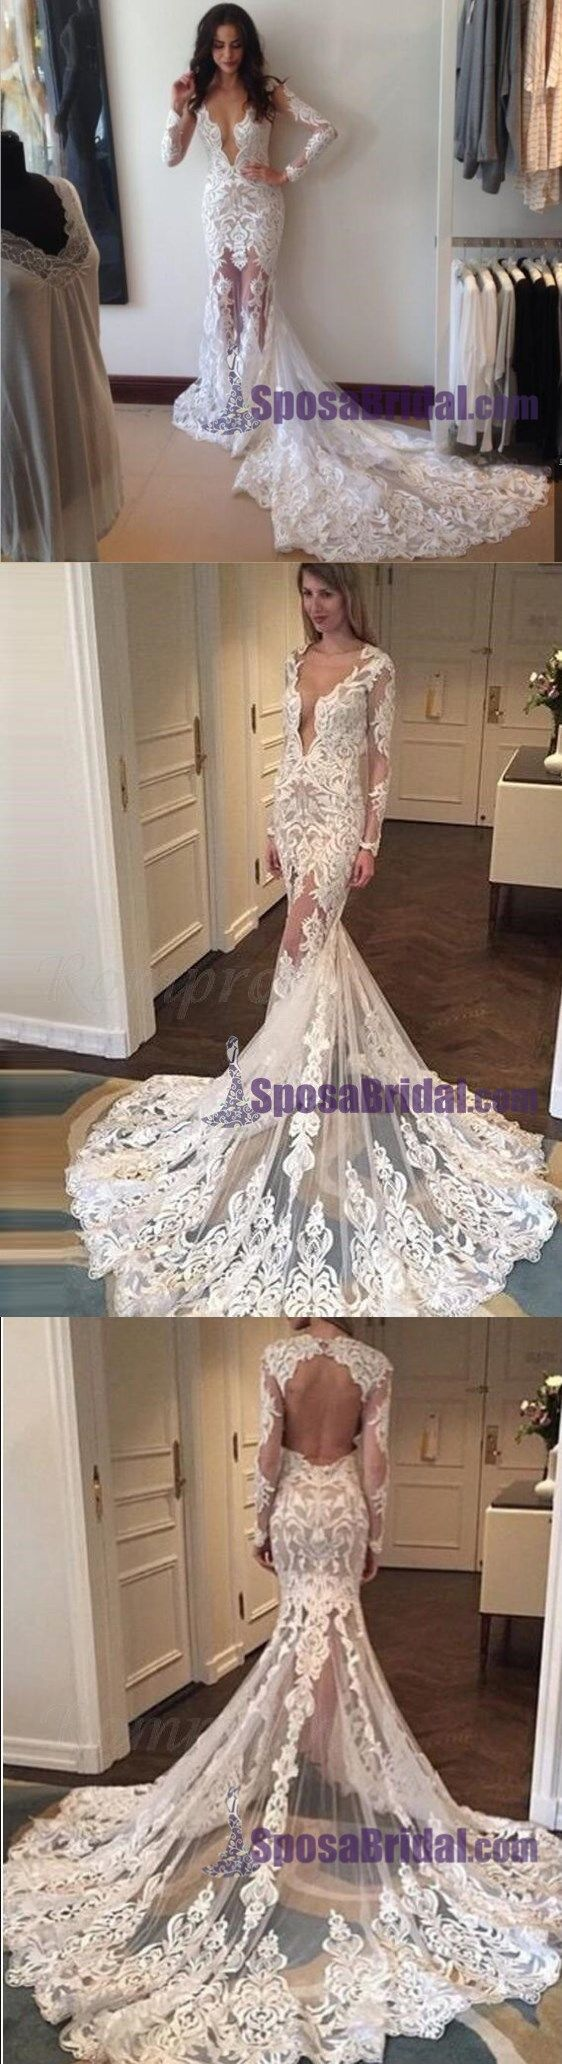 Full lace long sleeves most popular wedding dresses free custom